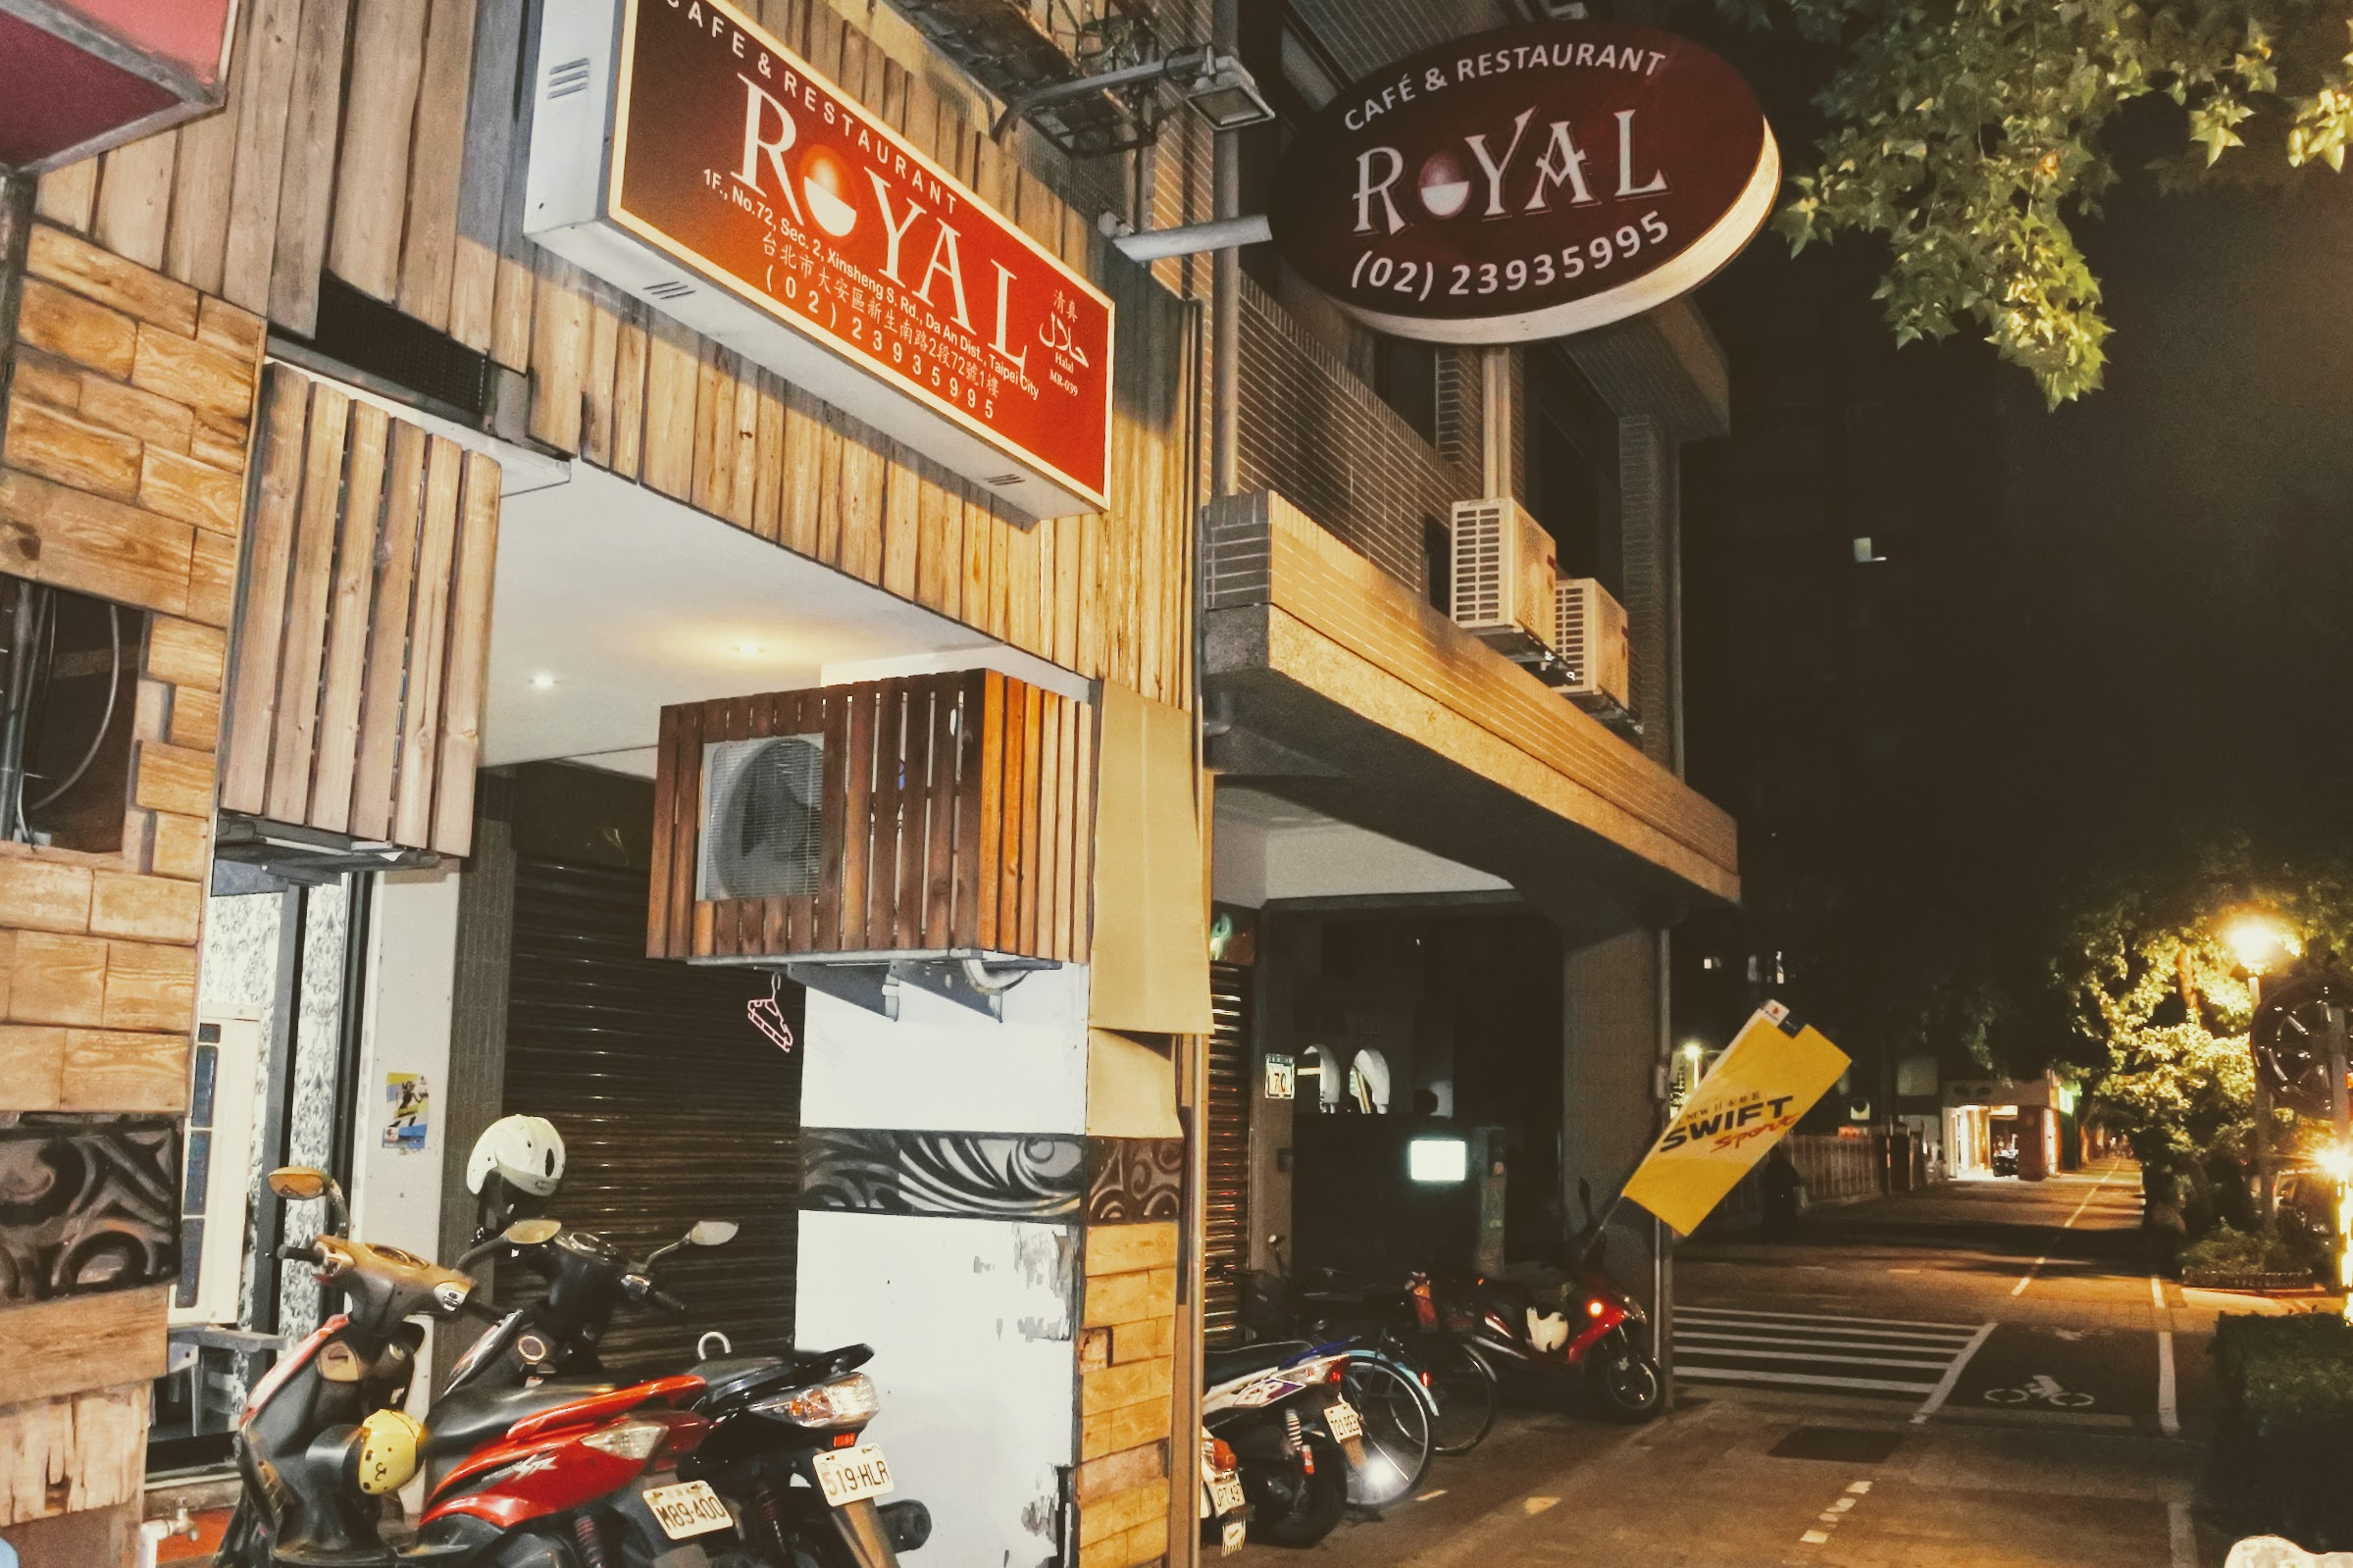 Royal cafe and restaurant